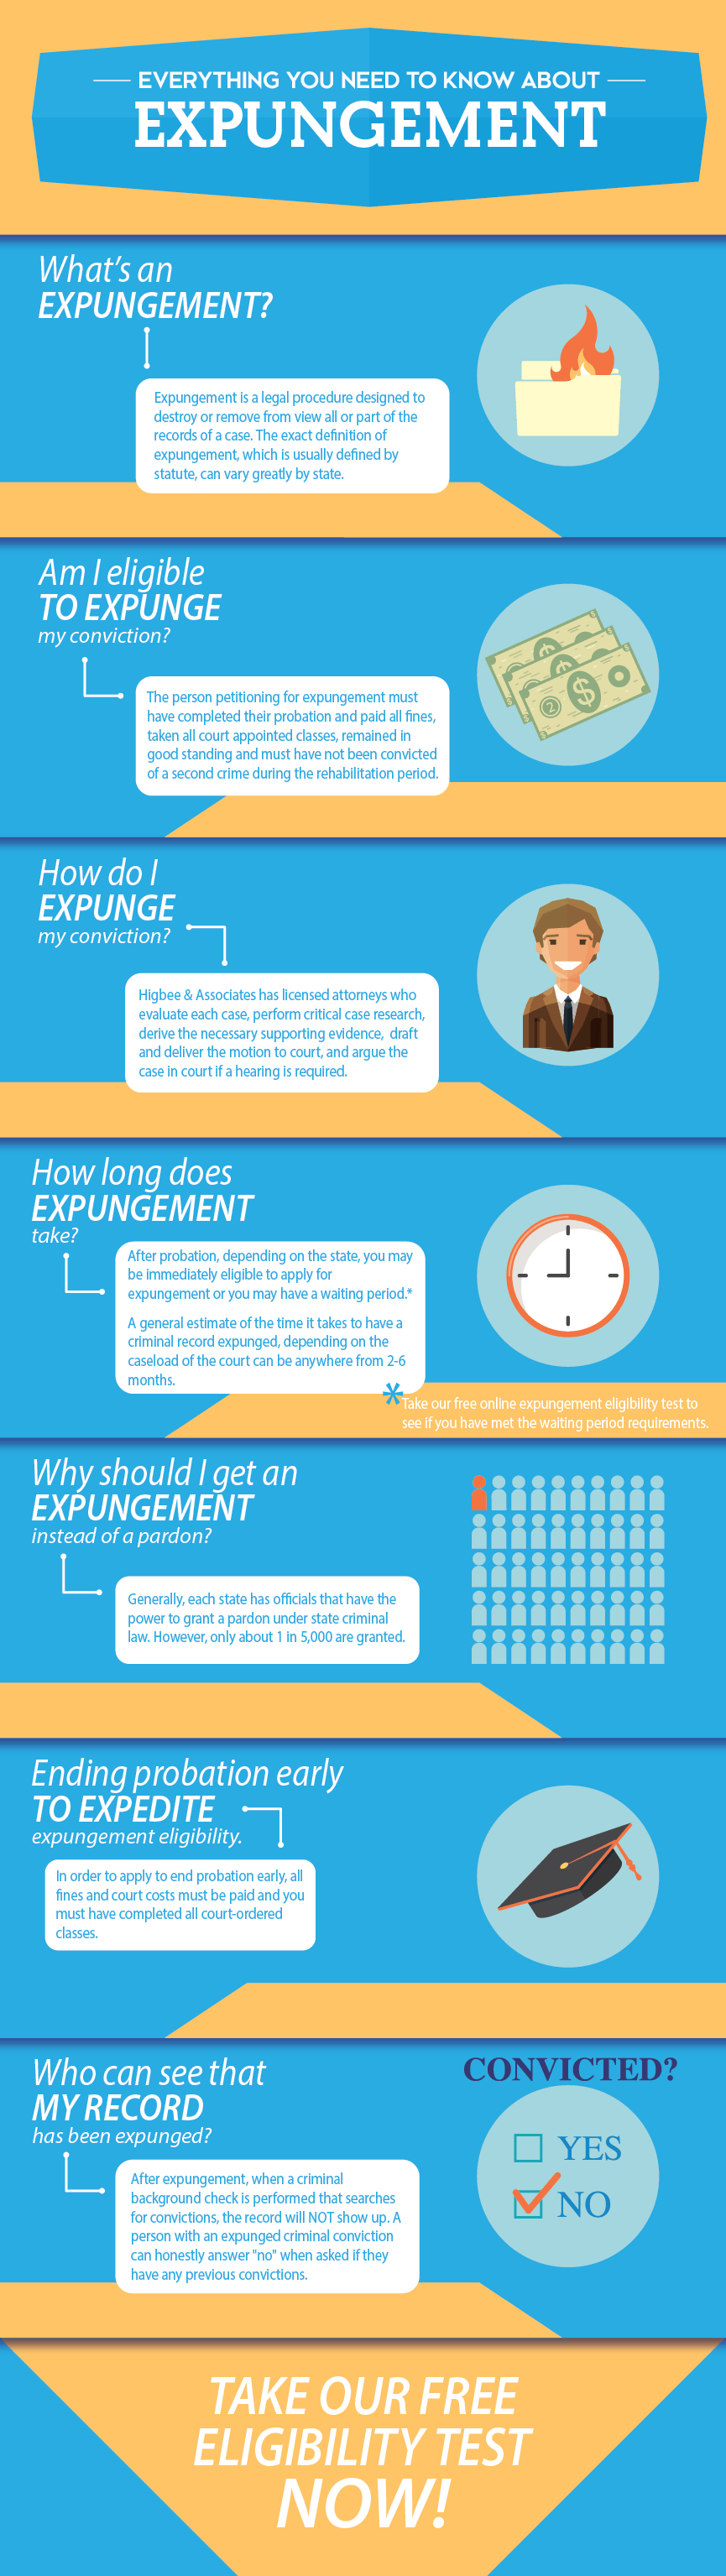 expungement guide infographic